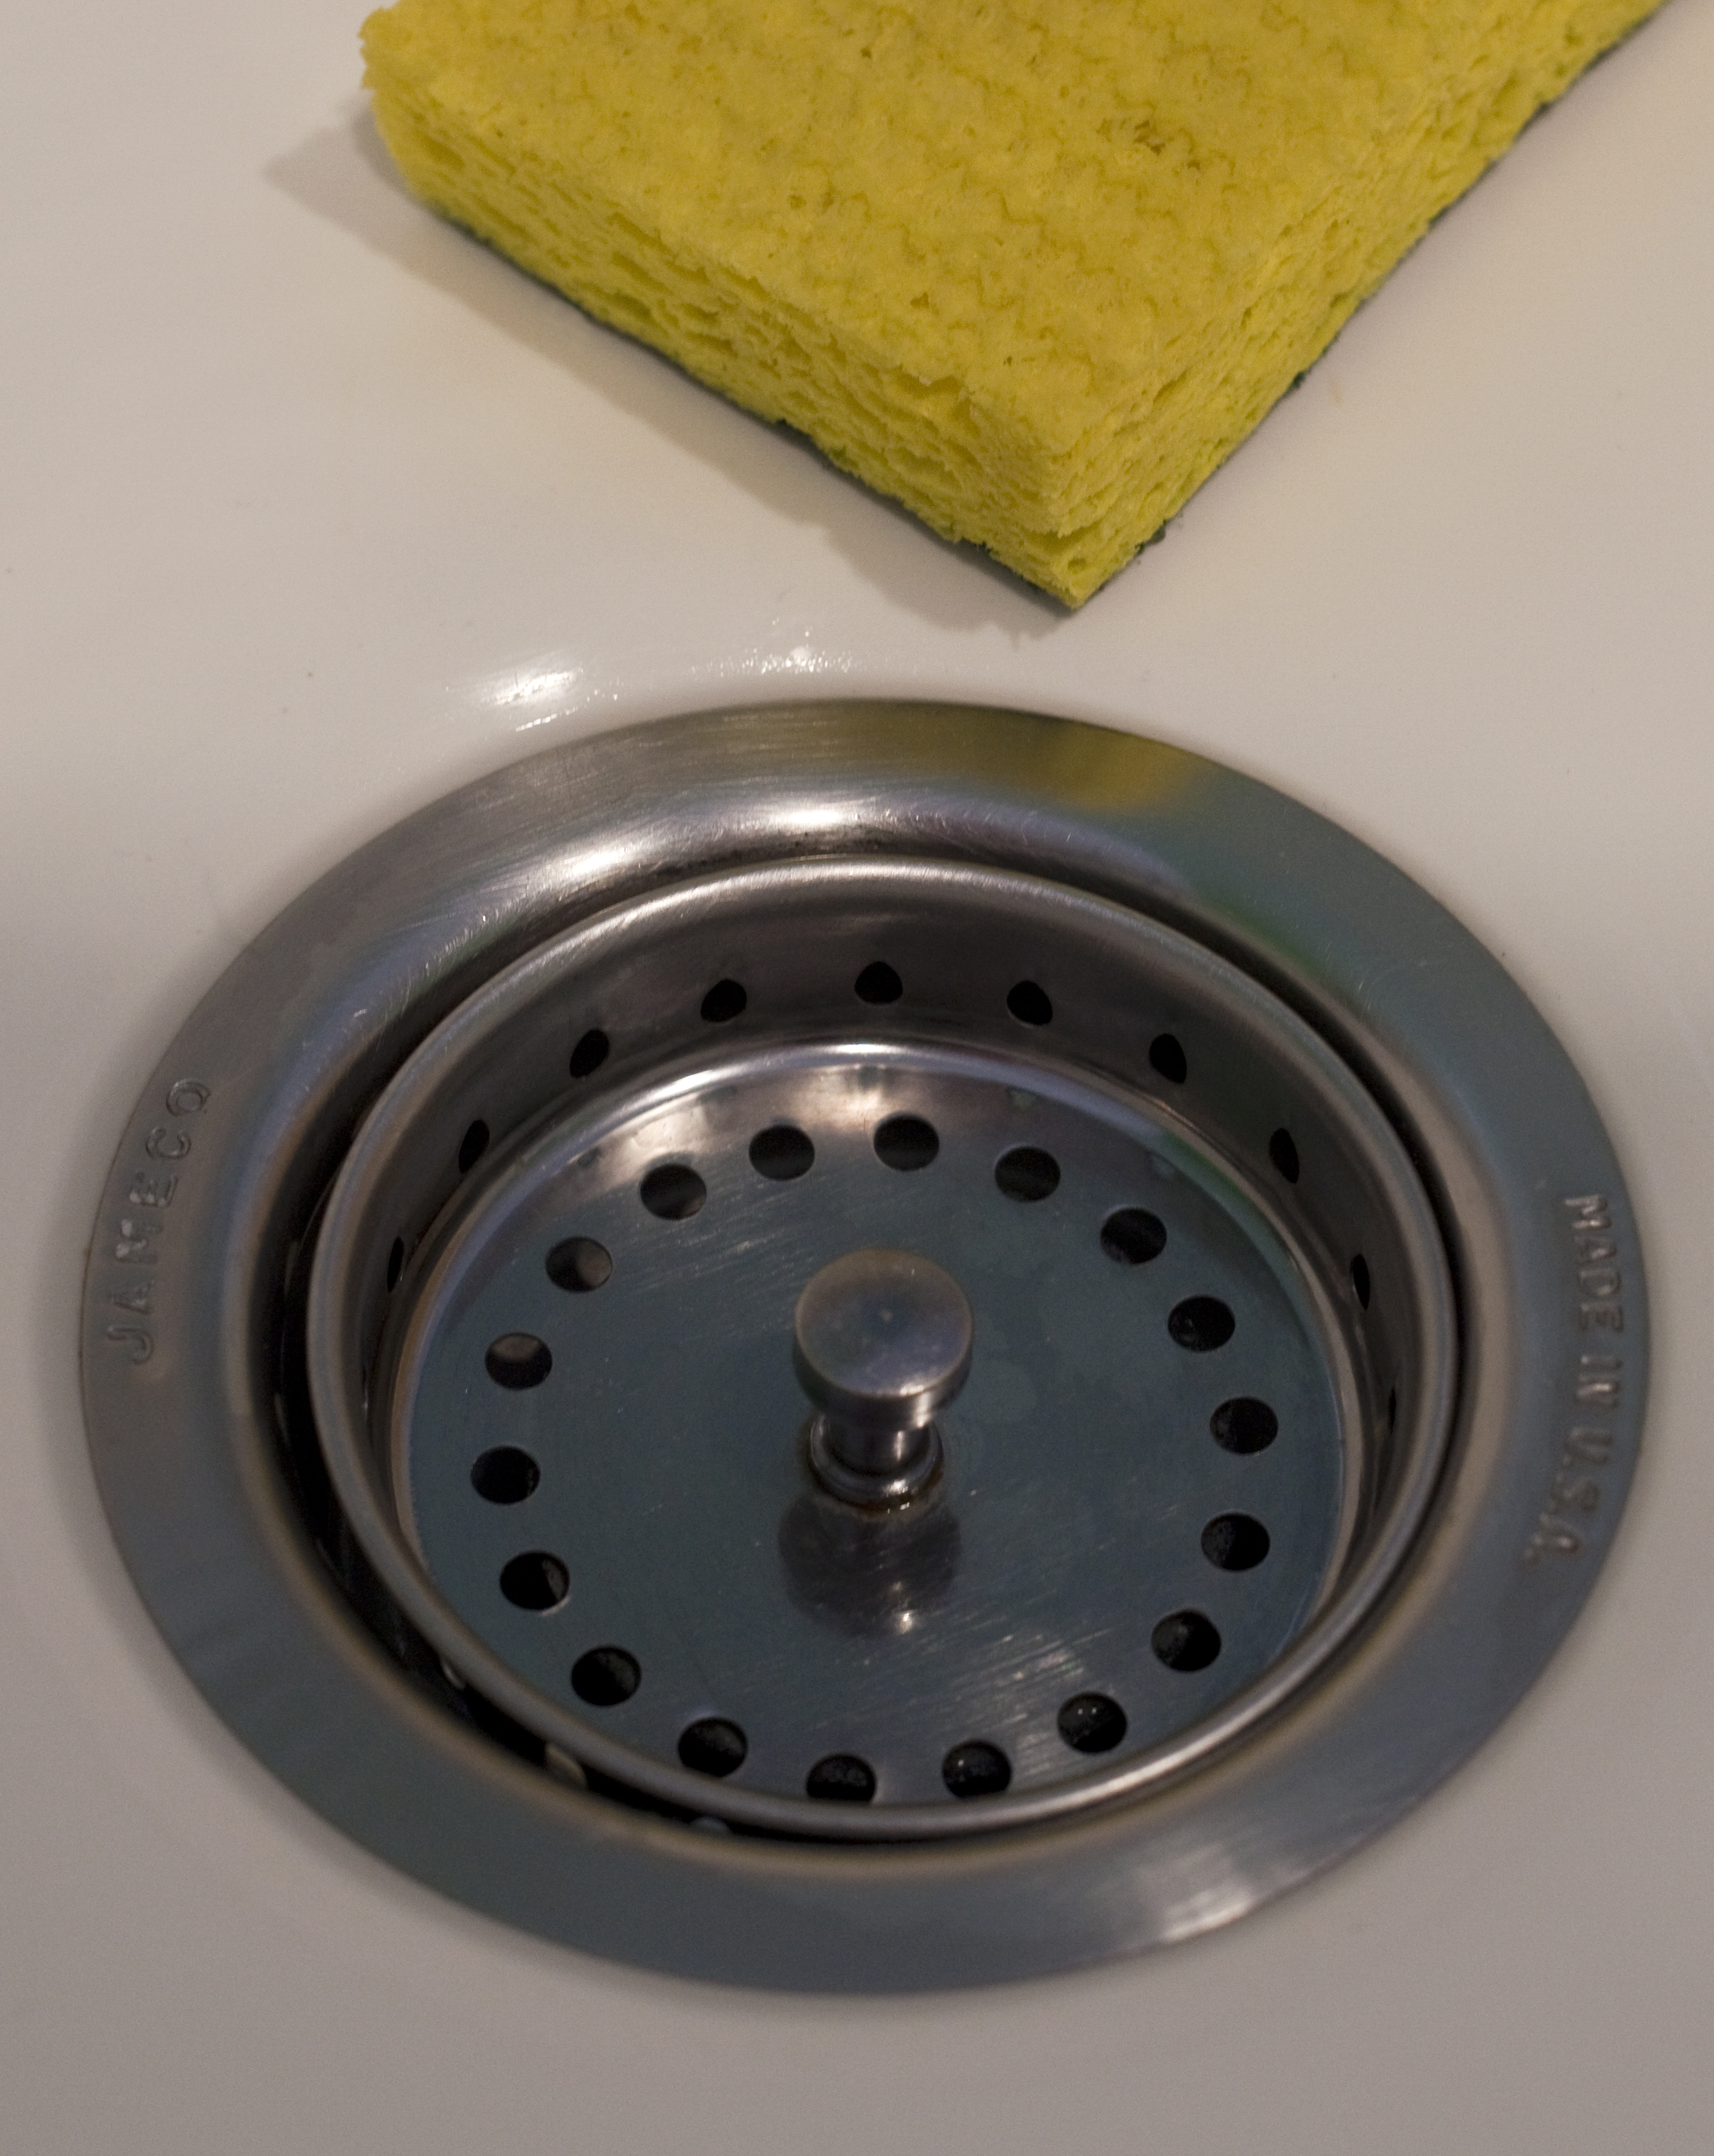 Kitchen sink strainer simple to replace yourself | News ...